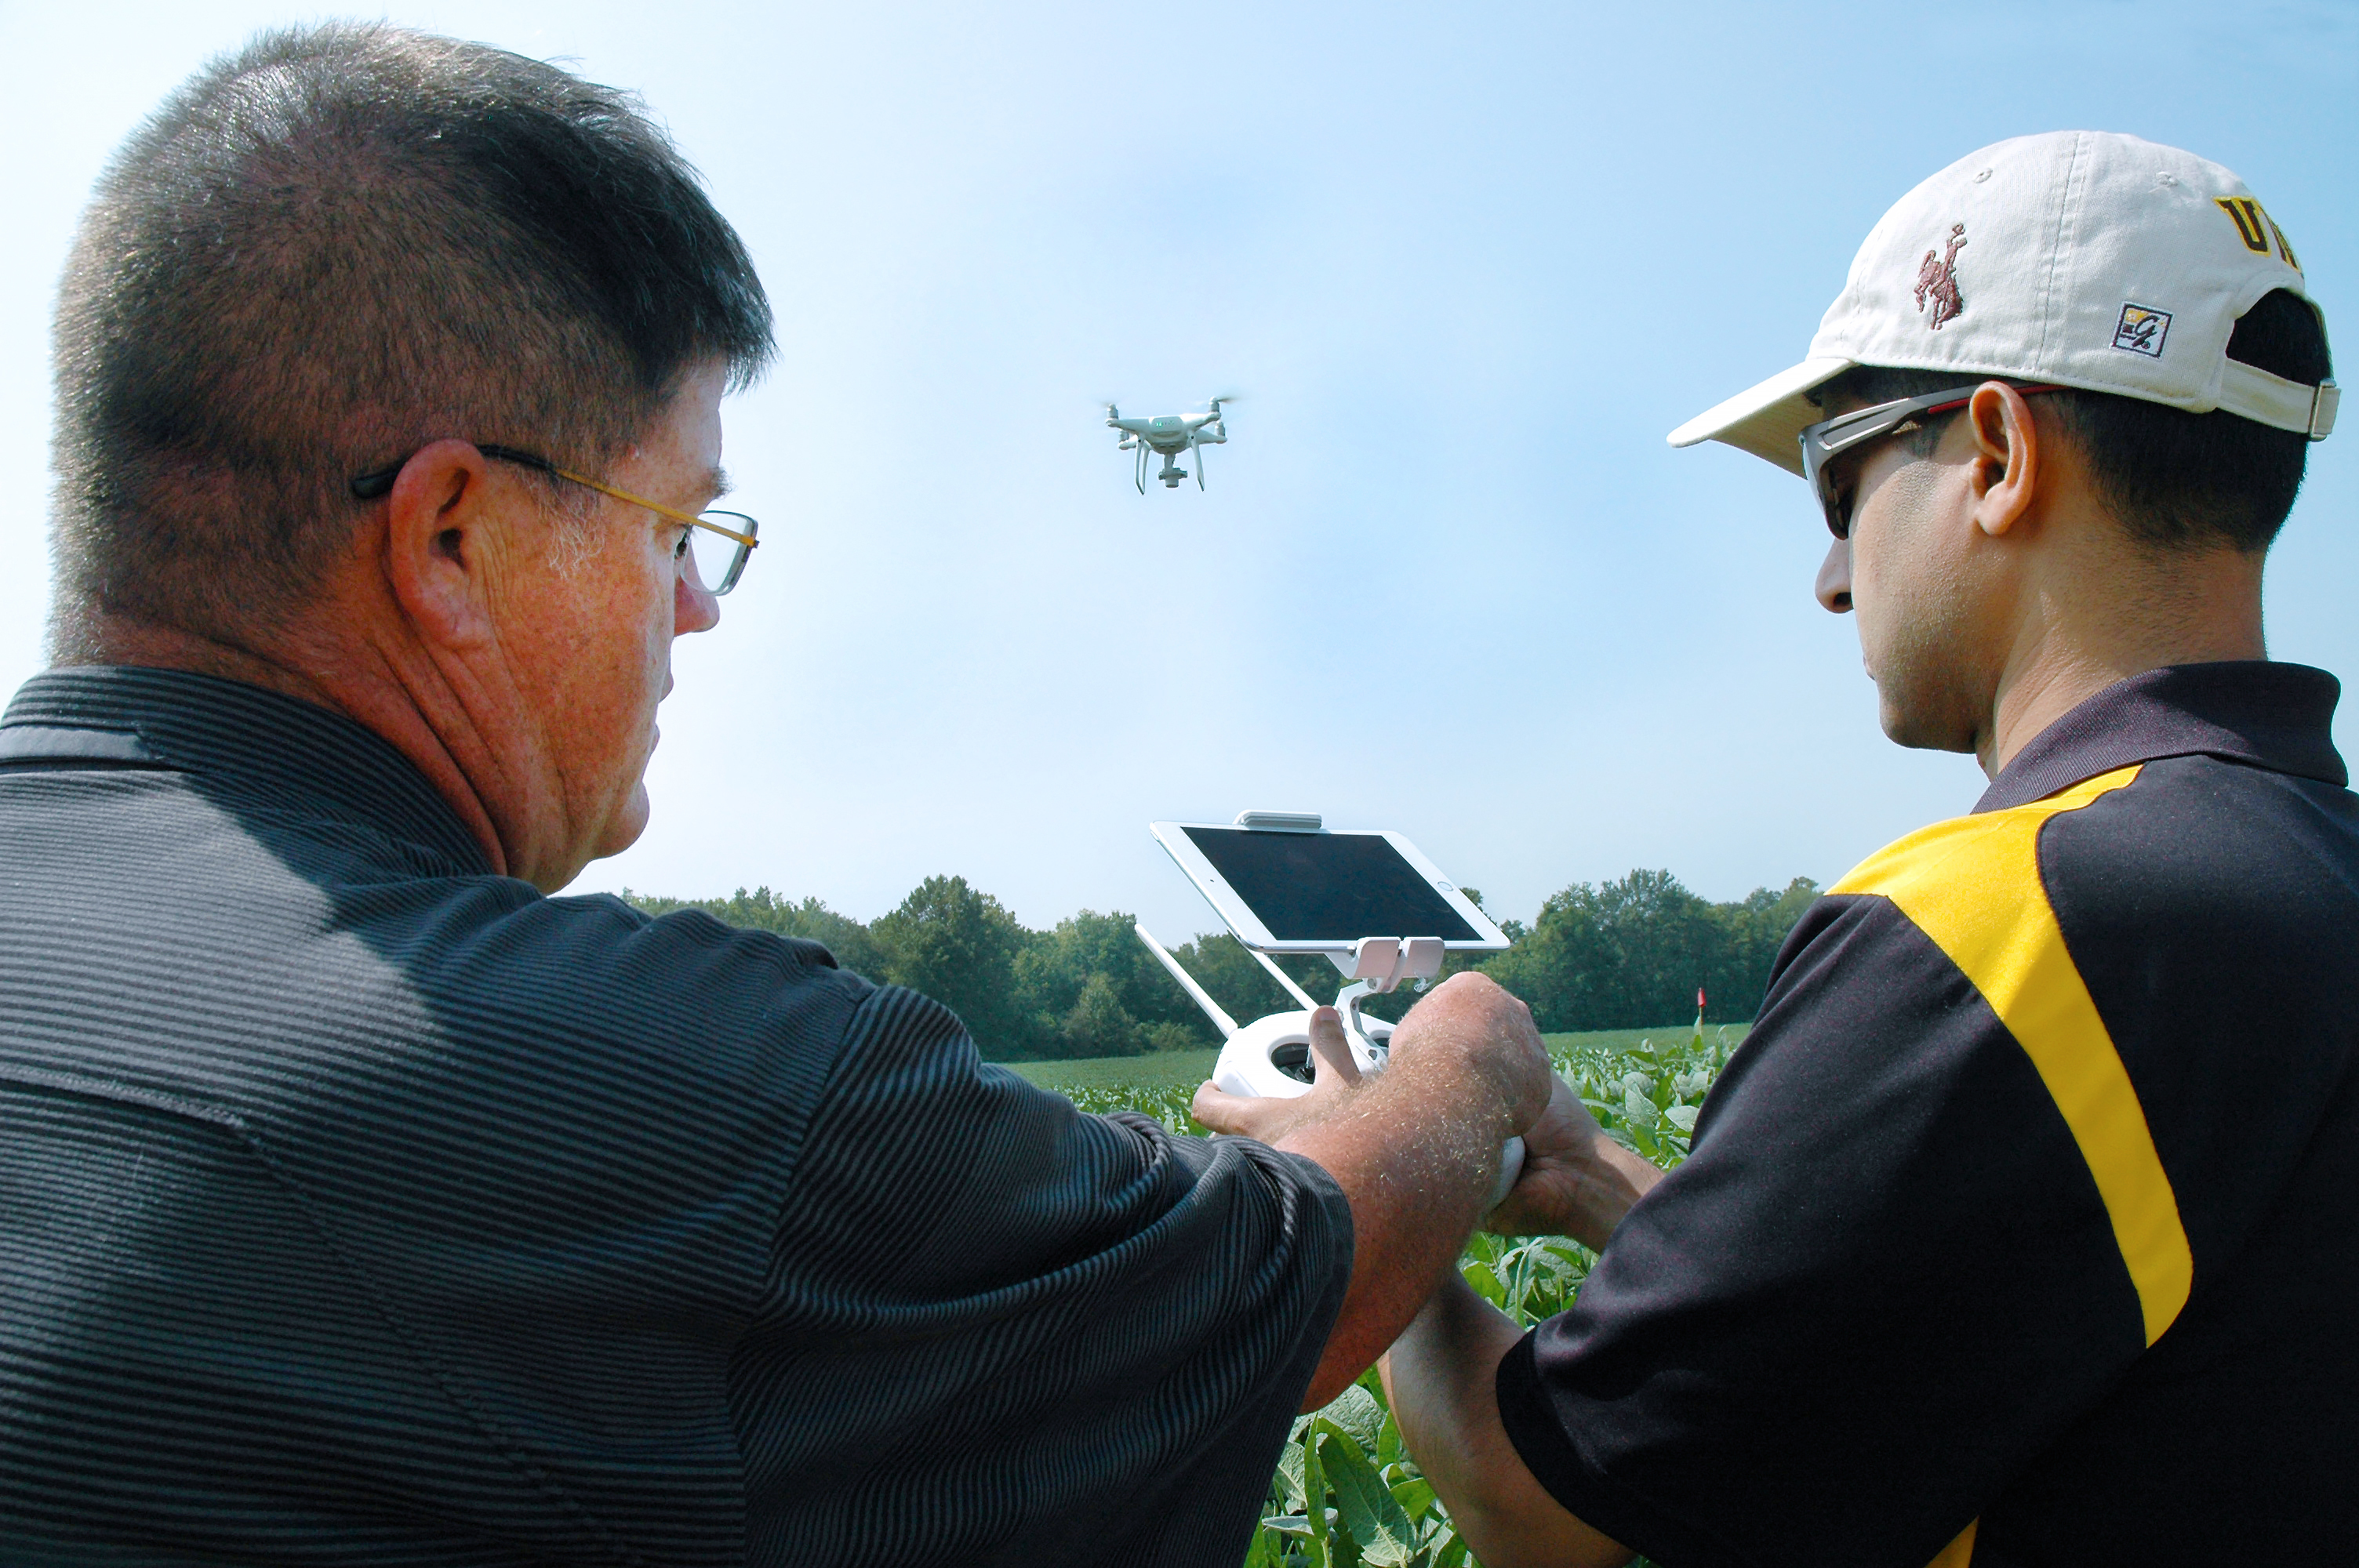 Kent Shannon, left, profiled by Successful Farming magazine's November 2017 issue as an 'exceptional extension specialist,' shows agronomy specialist Dhruba Dhakal how to use a drone to take aerial images of a soybean field in the Missouri Strip Trial Pro